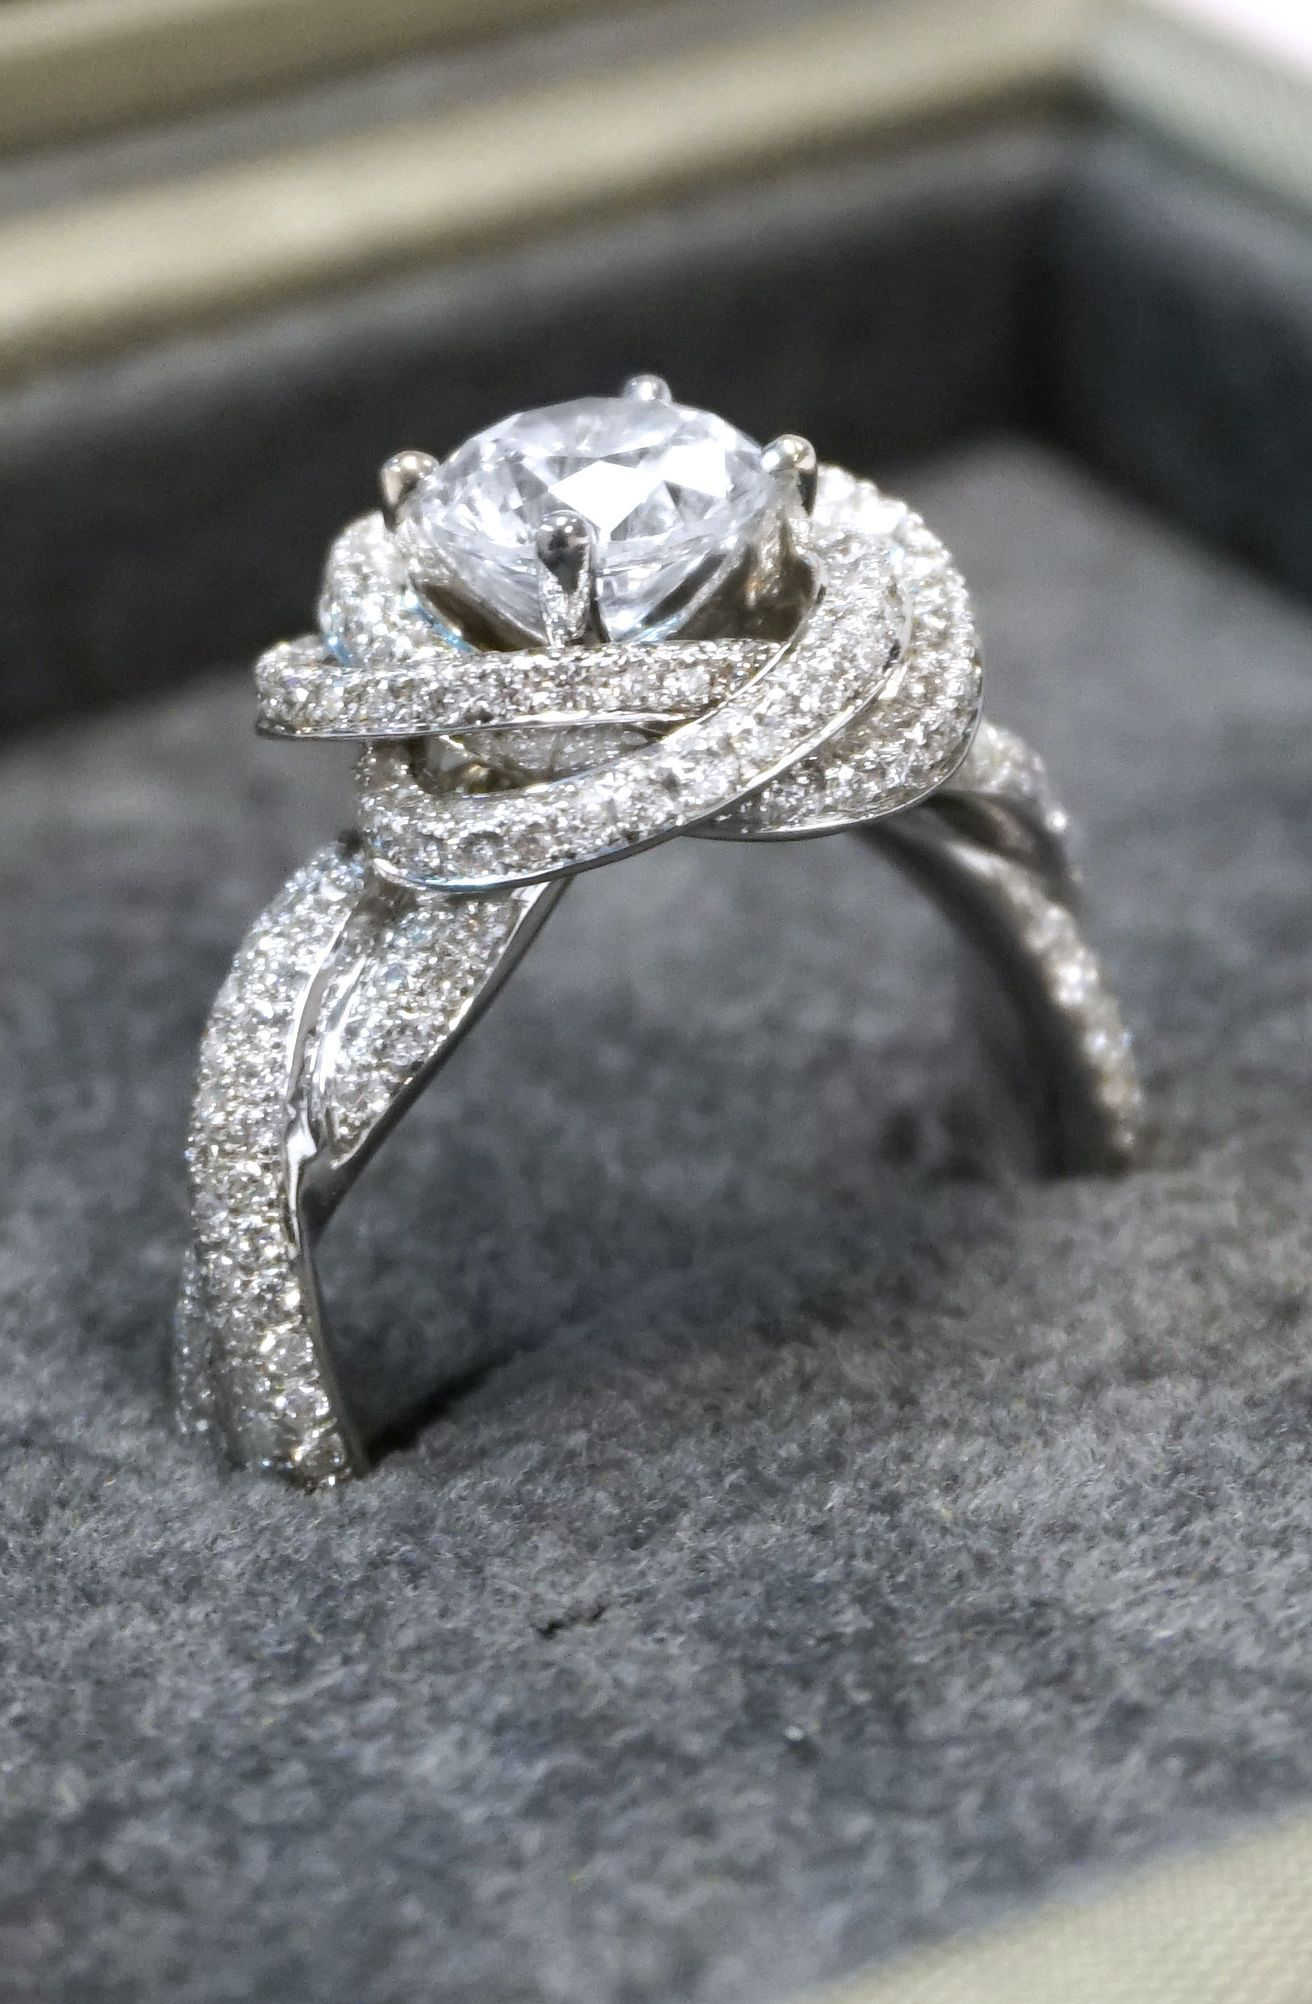 up diamonds step cut for glamorous tacori rings channel streamlined look the impressive stone with finished set signature flourishes three is given engagement product princess diamond ring a